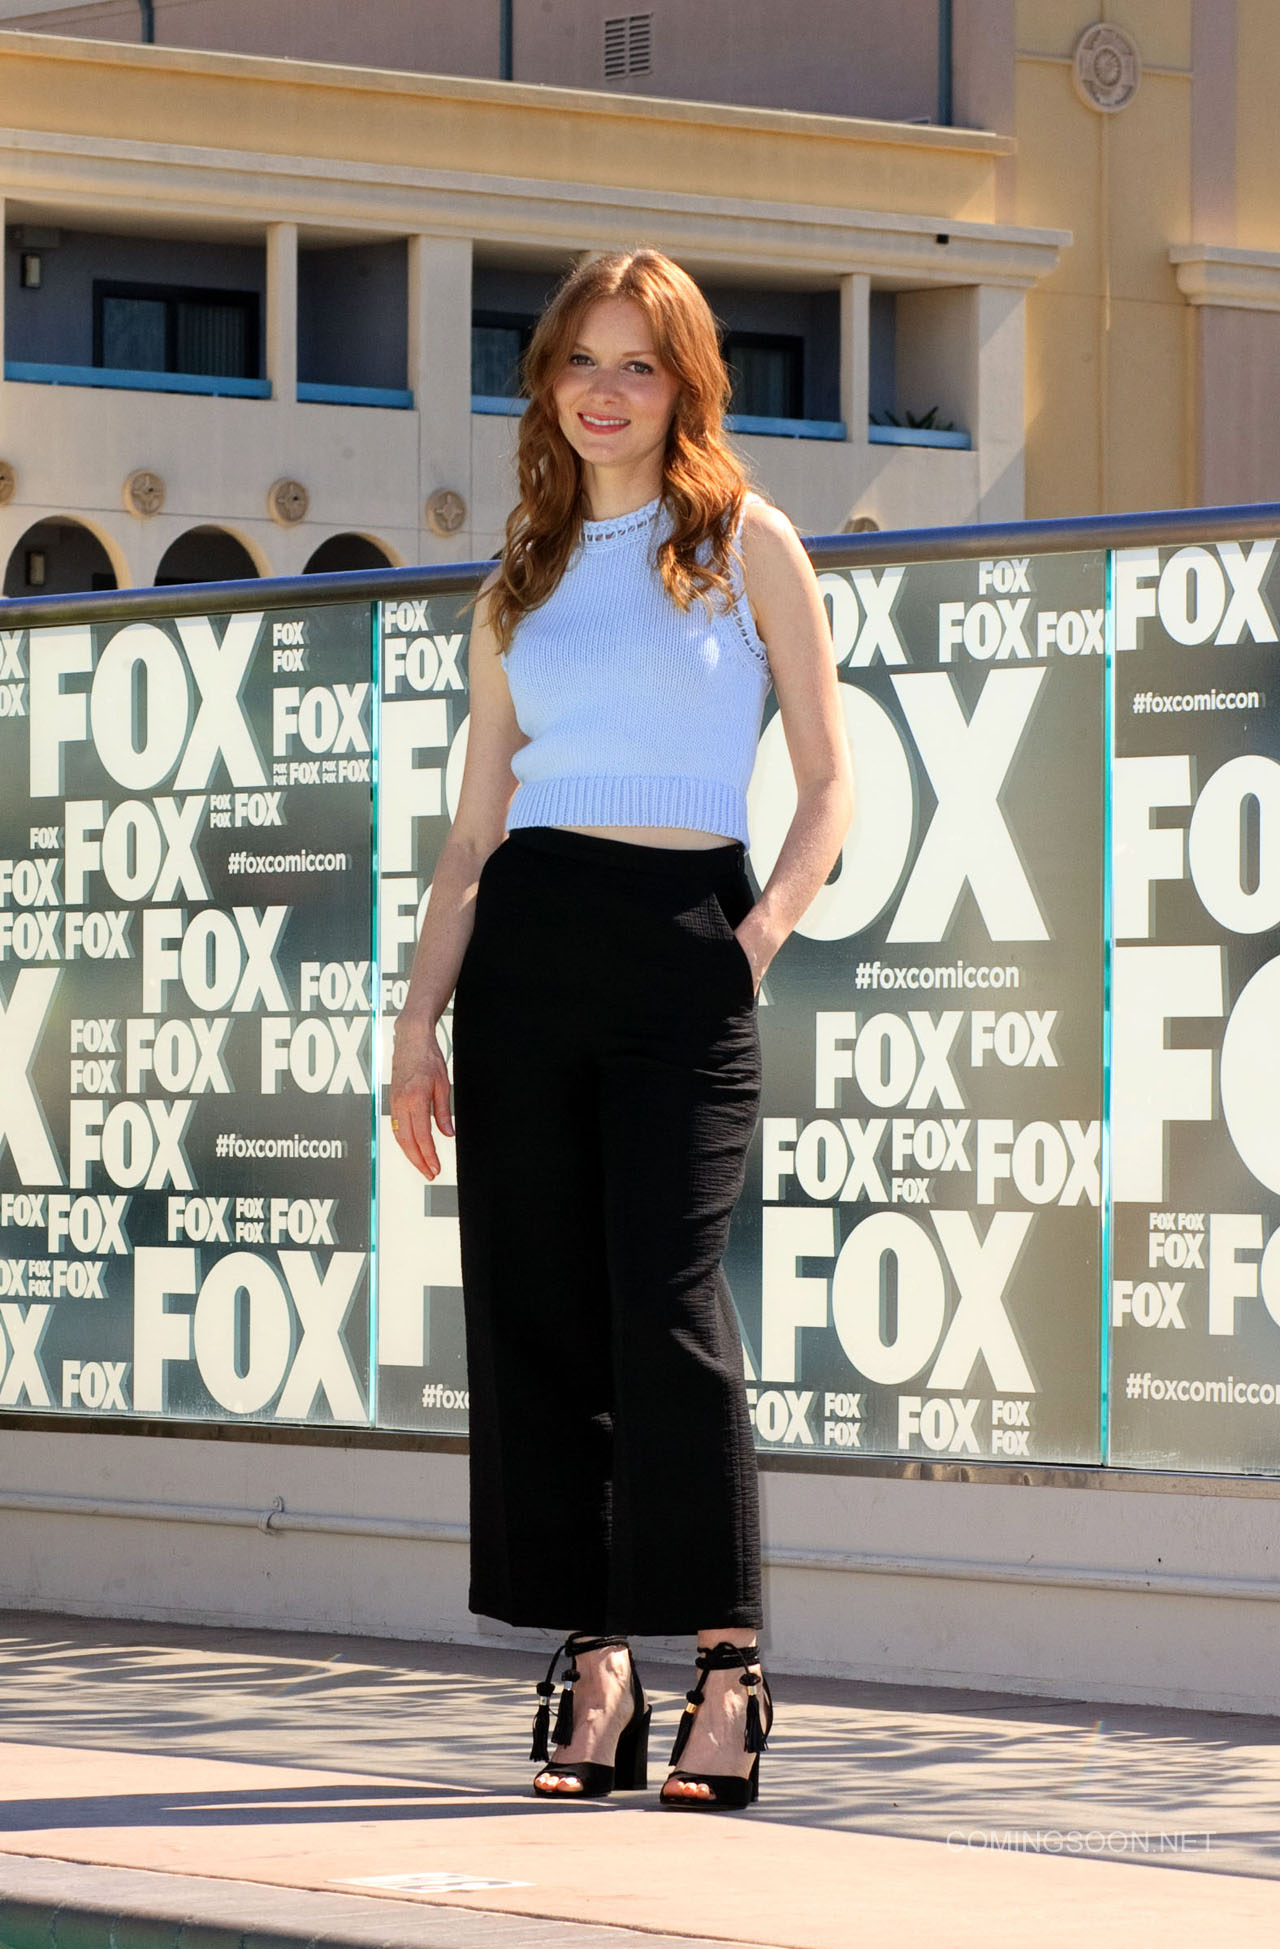 Fox Comic Con breakfast with the cast of Walking Dead and Outcast Featuring: Wren Schmidt Where: San Diego, California, United States When: 22 Jul 2016 Credit: Tony Forte/WENN